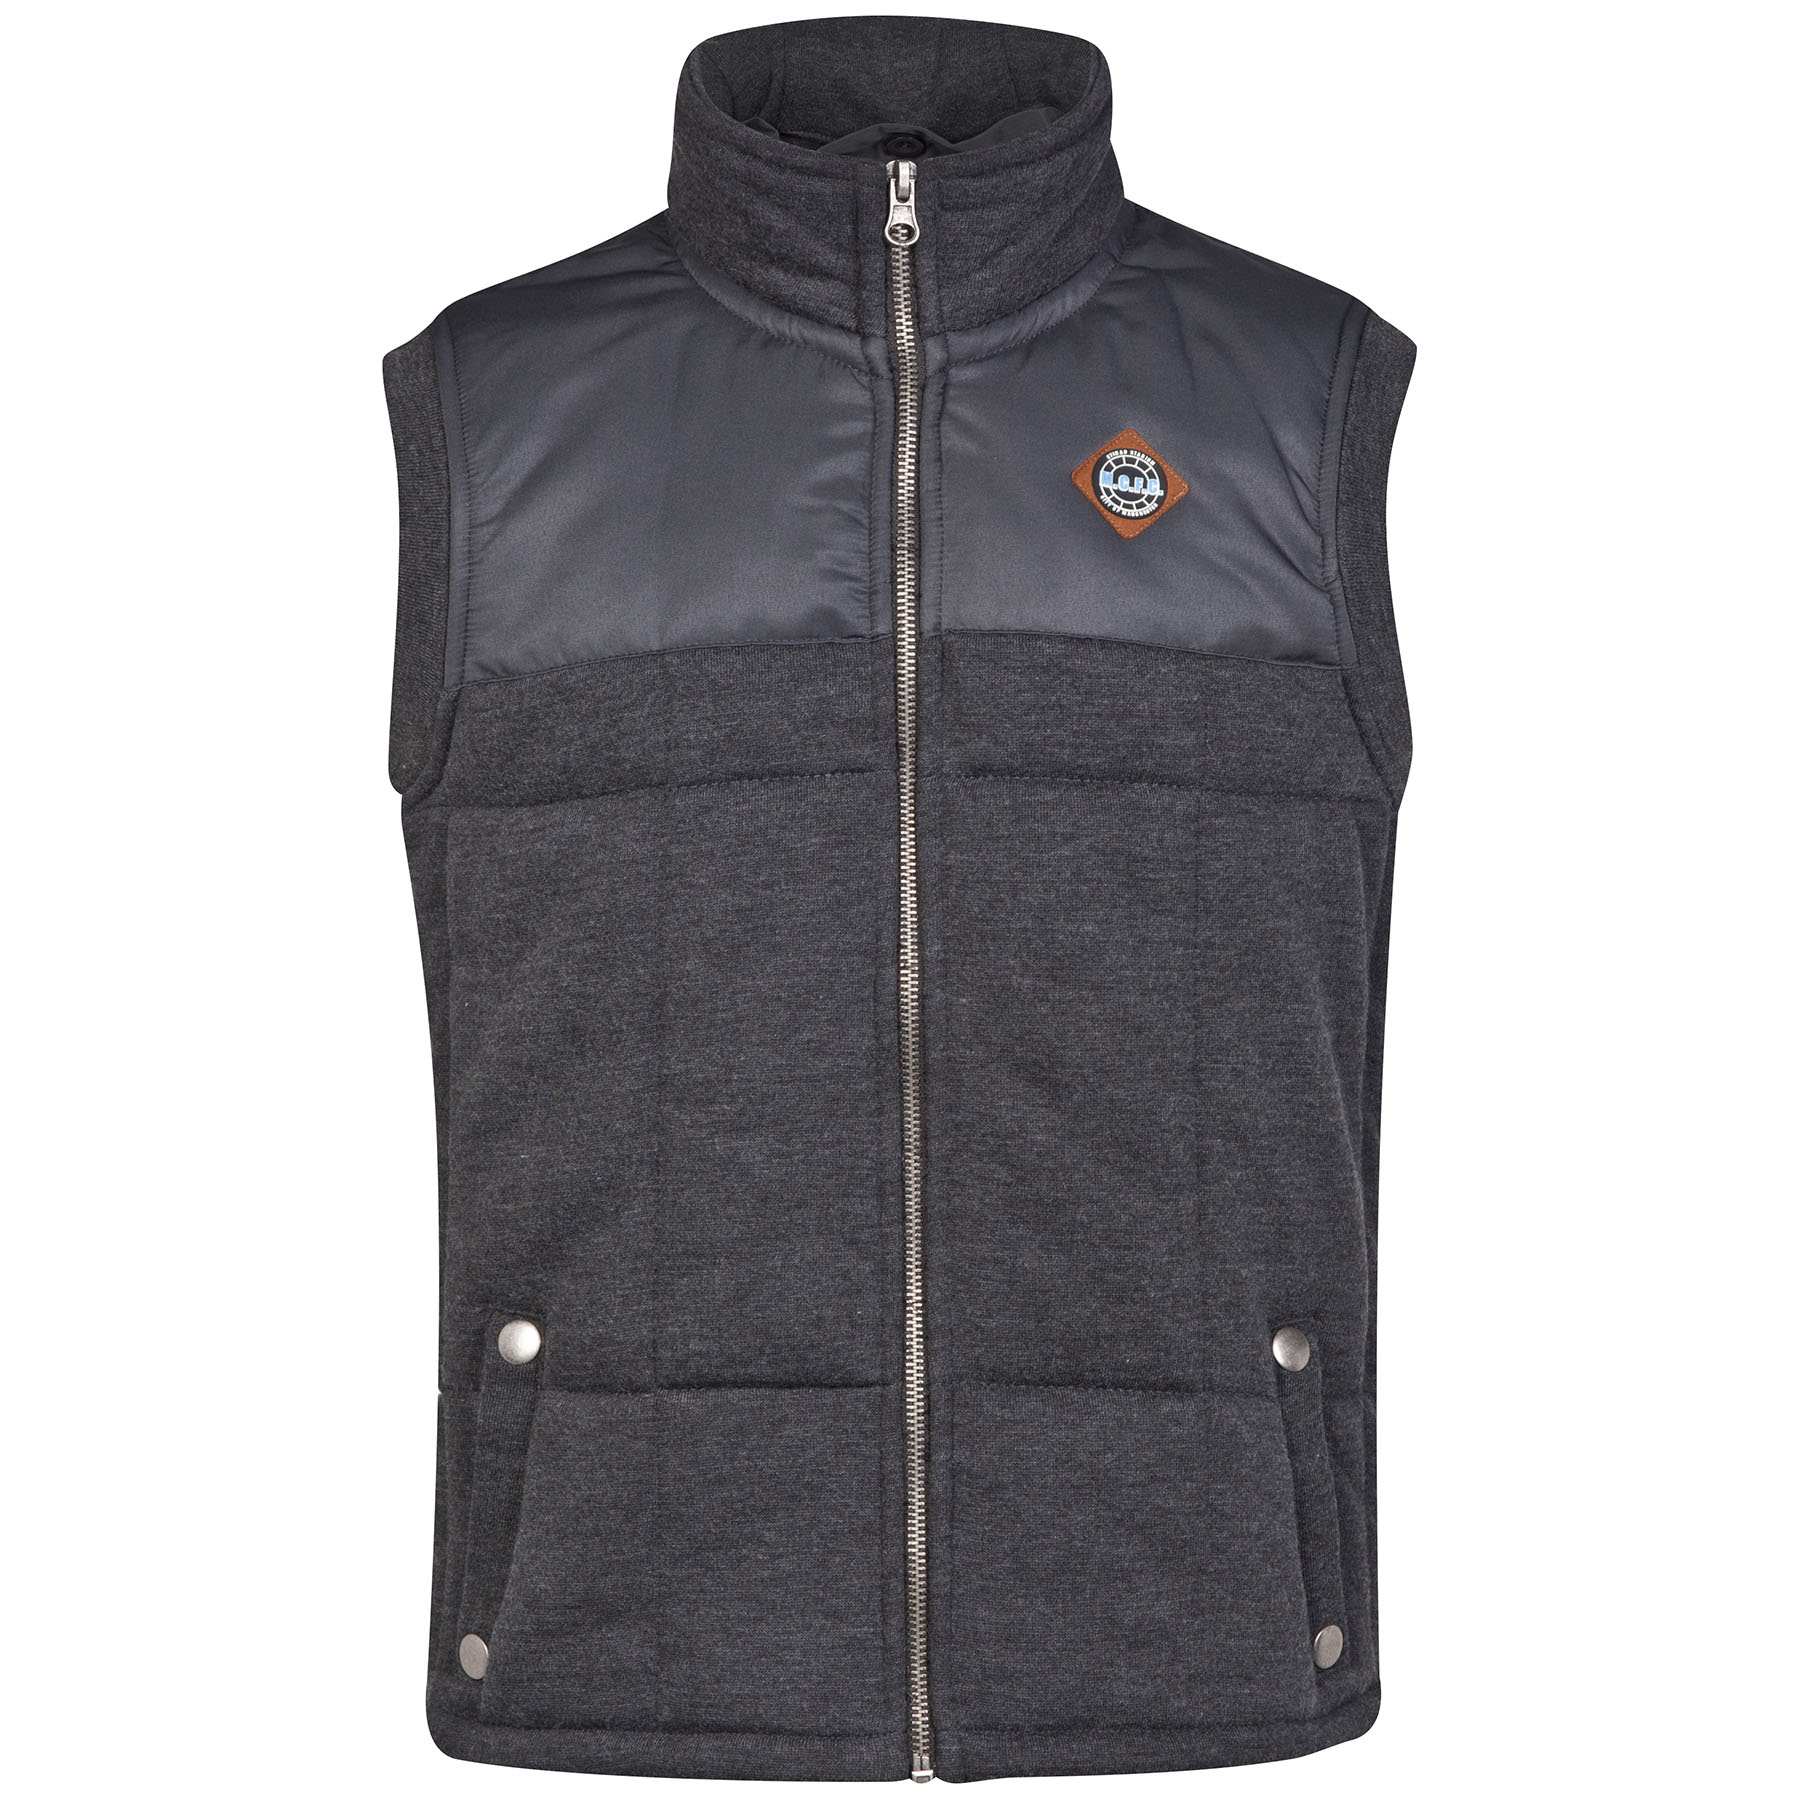 Manchester City Gilet - Charcoal - Older Boys